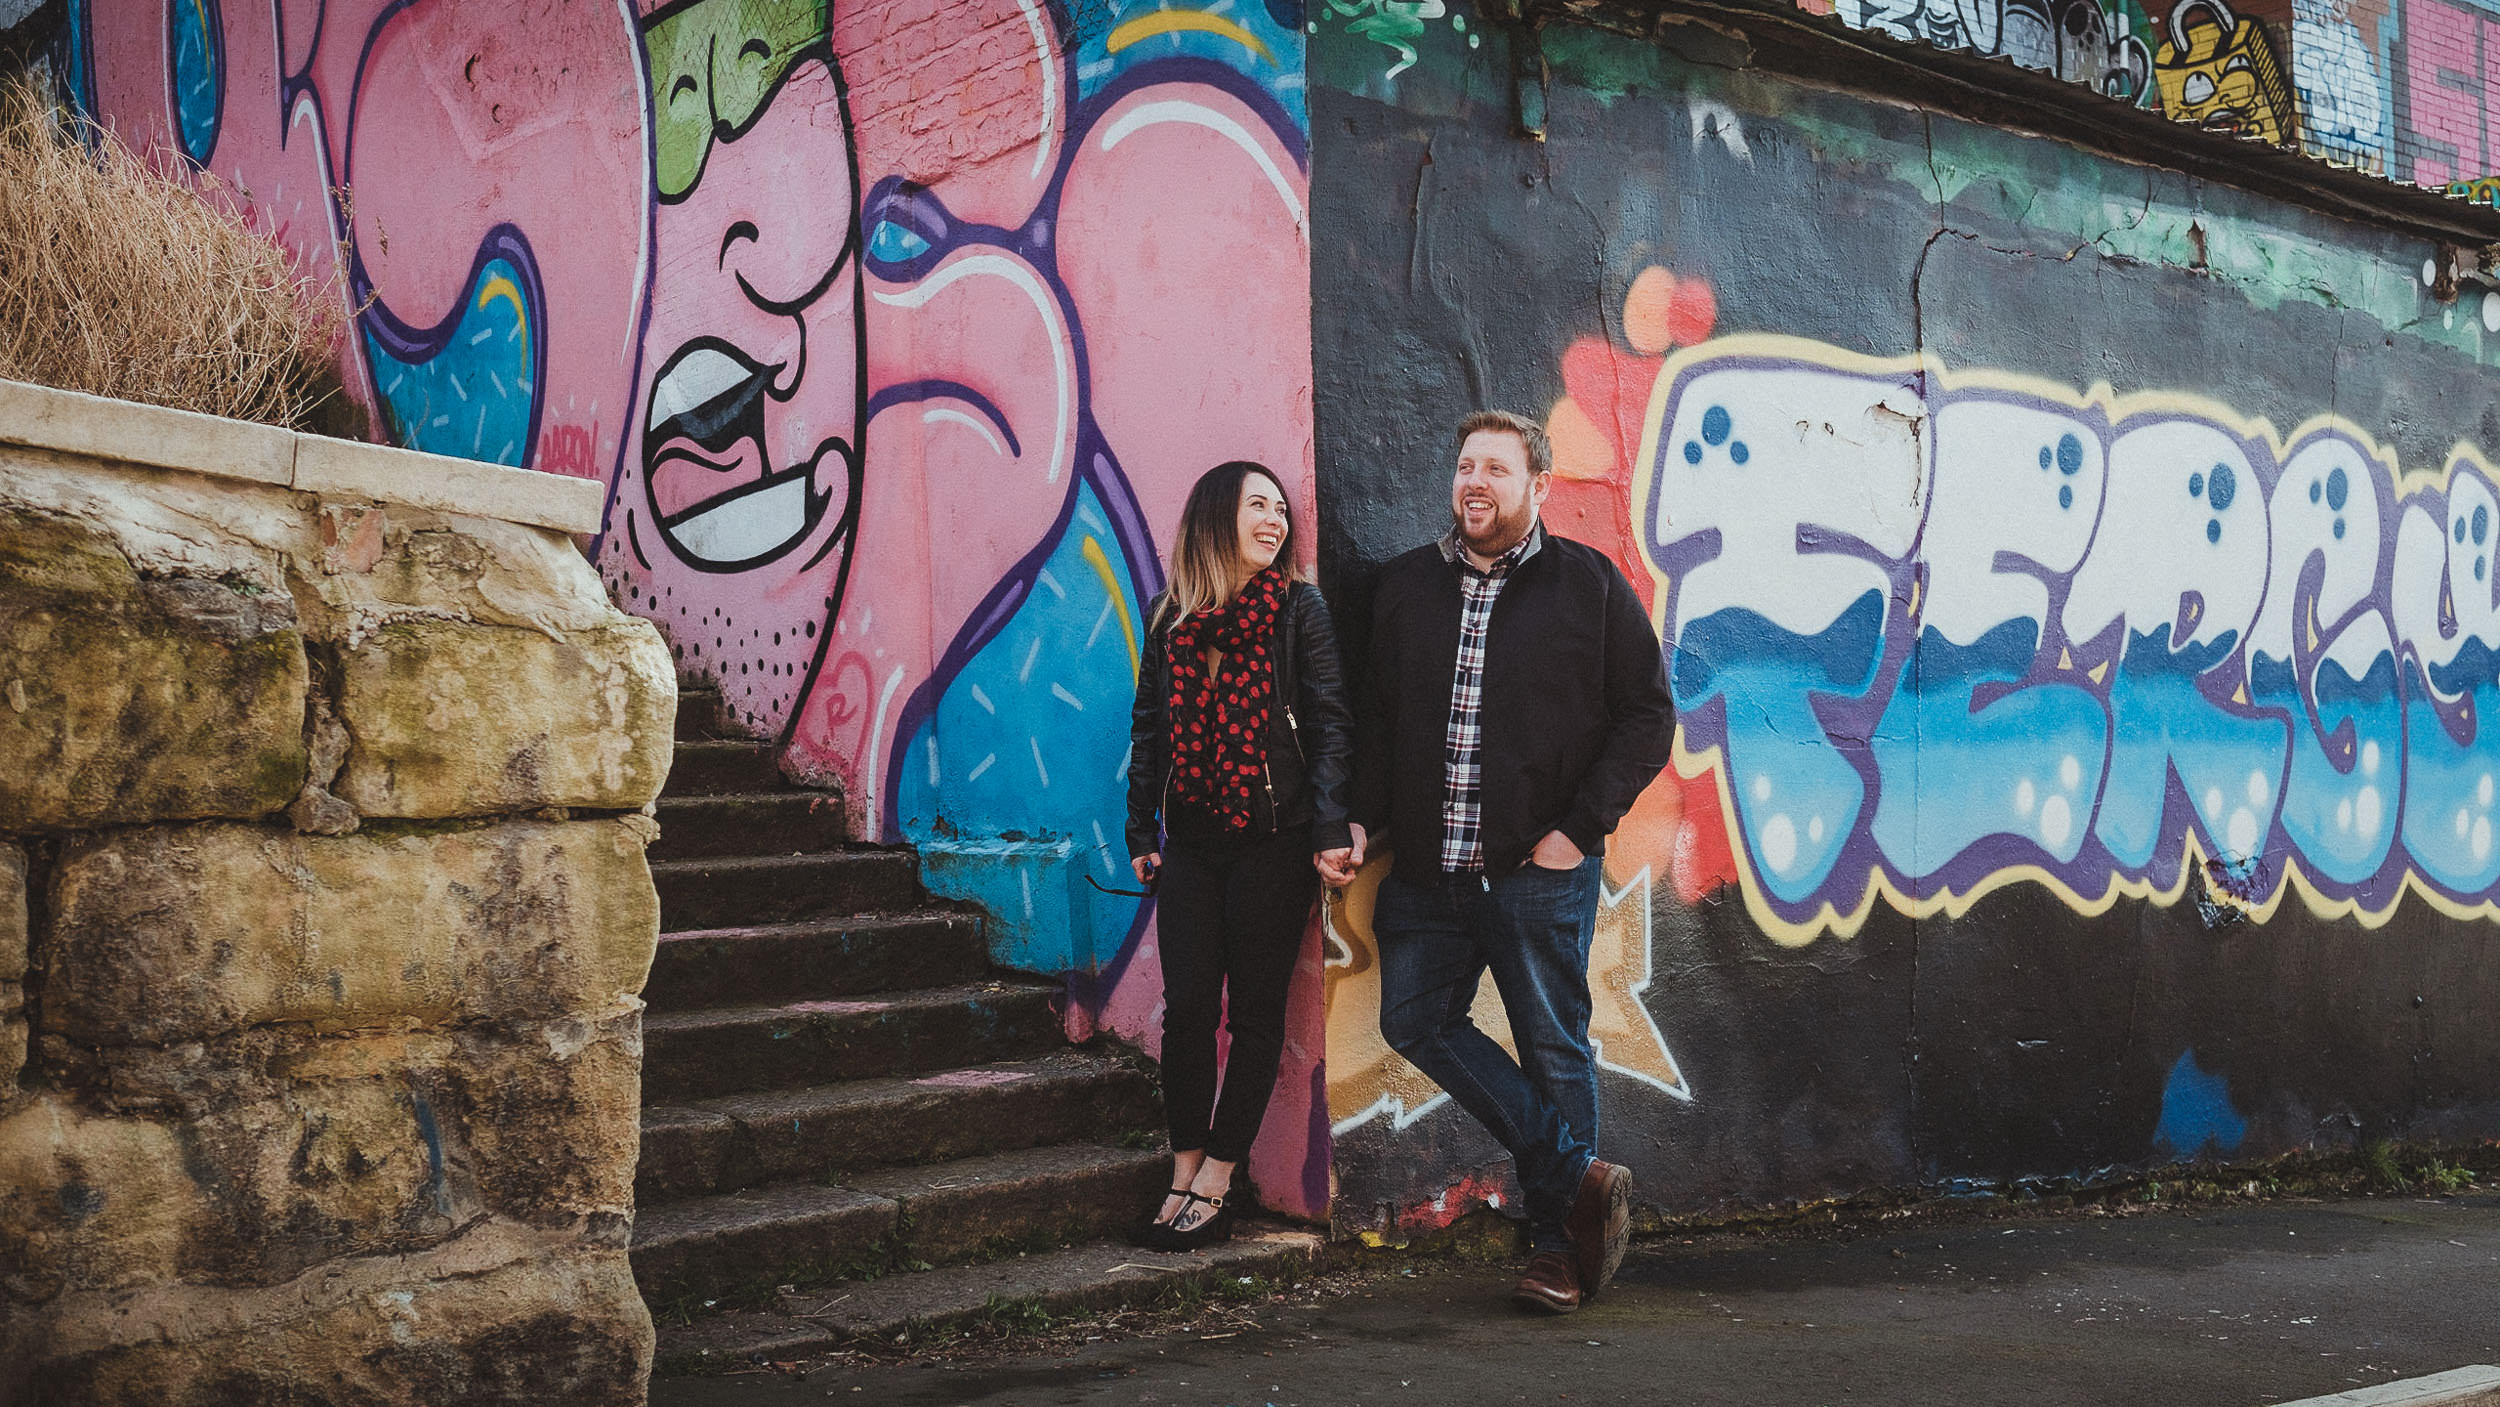 A couple hold hands while standing on a graffiti covered street corner in the Ouseburn